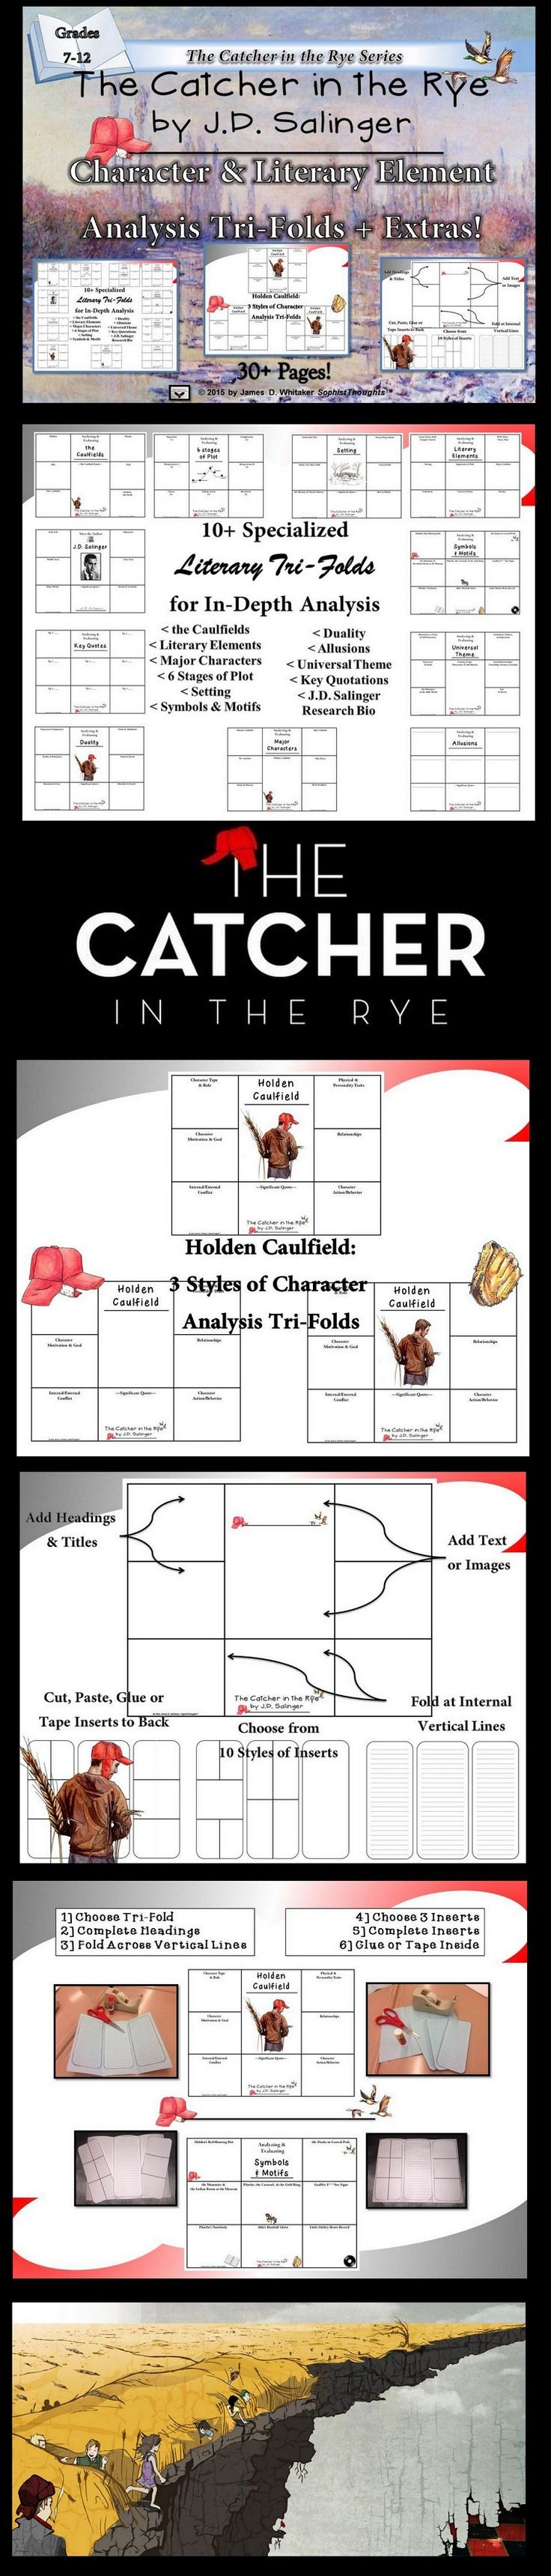 an analysis of the inner conflict of the protagonist in catcher in the rye by j d salinger Catcher in the rye rhetorical analysis  the catcher in the rye – analysis and summary name of the book: the catcher in the rye writer: j d salinger his complete name is jerome david salinger, and he was born the first day of.